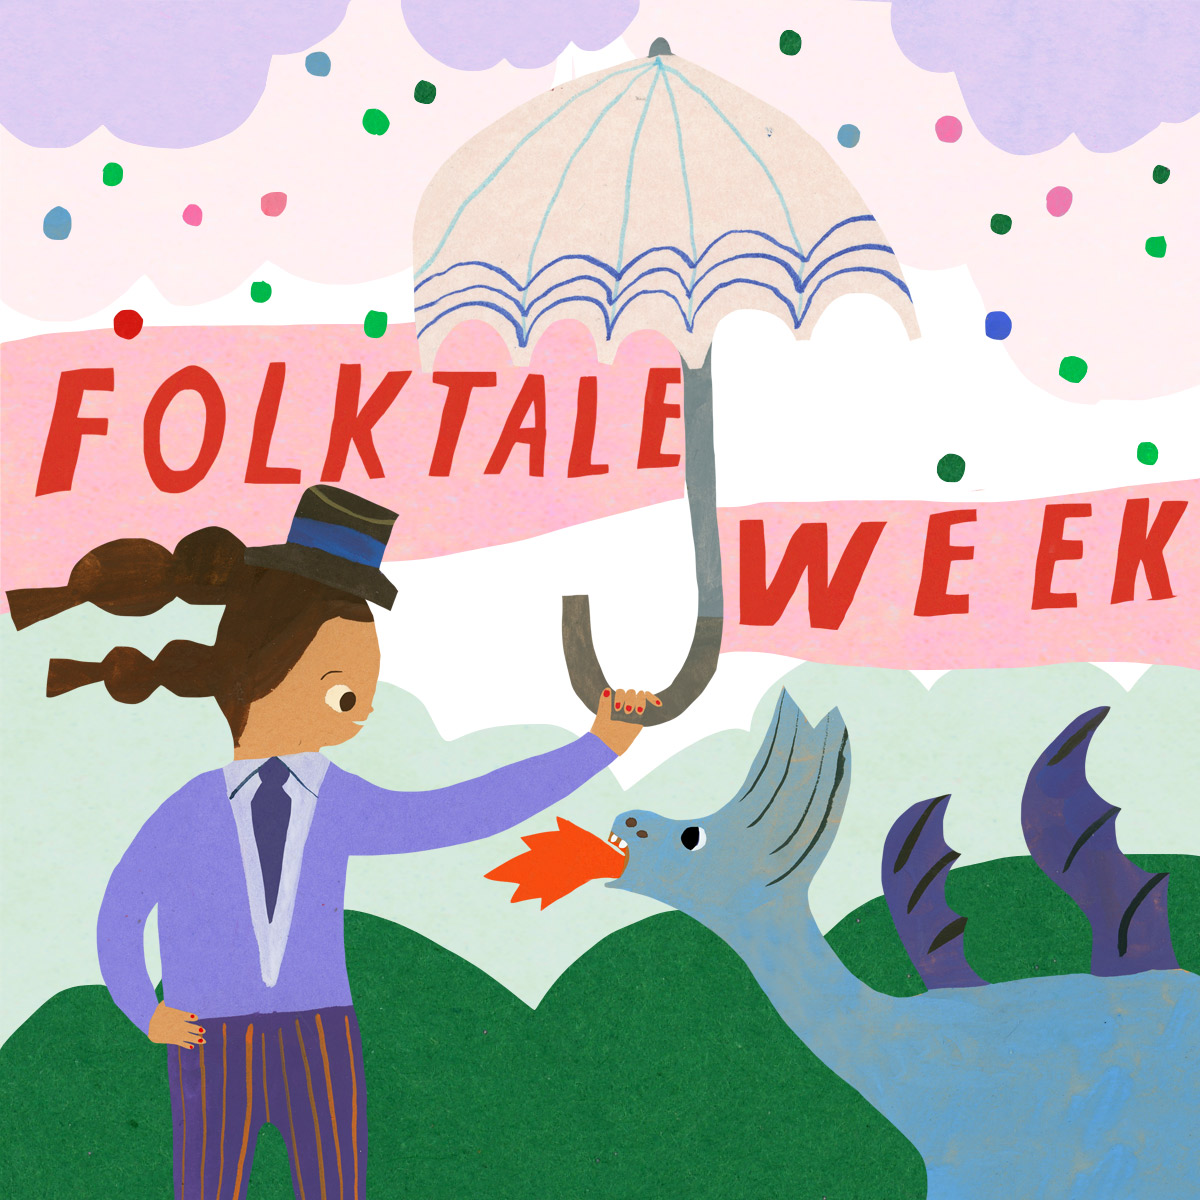 Folktale Week 2018 - Im joining the 7 day challenge of exploring Folk Tales 12-18th of November…Please check into my INSTAGRAM and check out all the work by checking the #folktaleweek2018 hashtag for all the artists work x